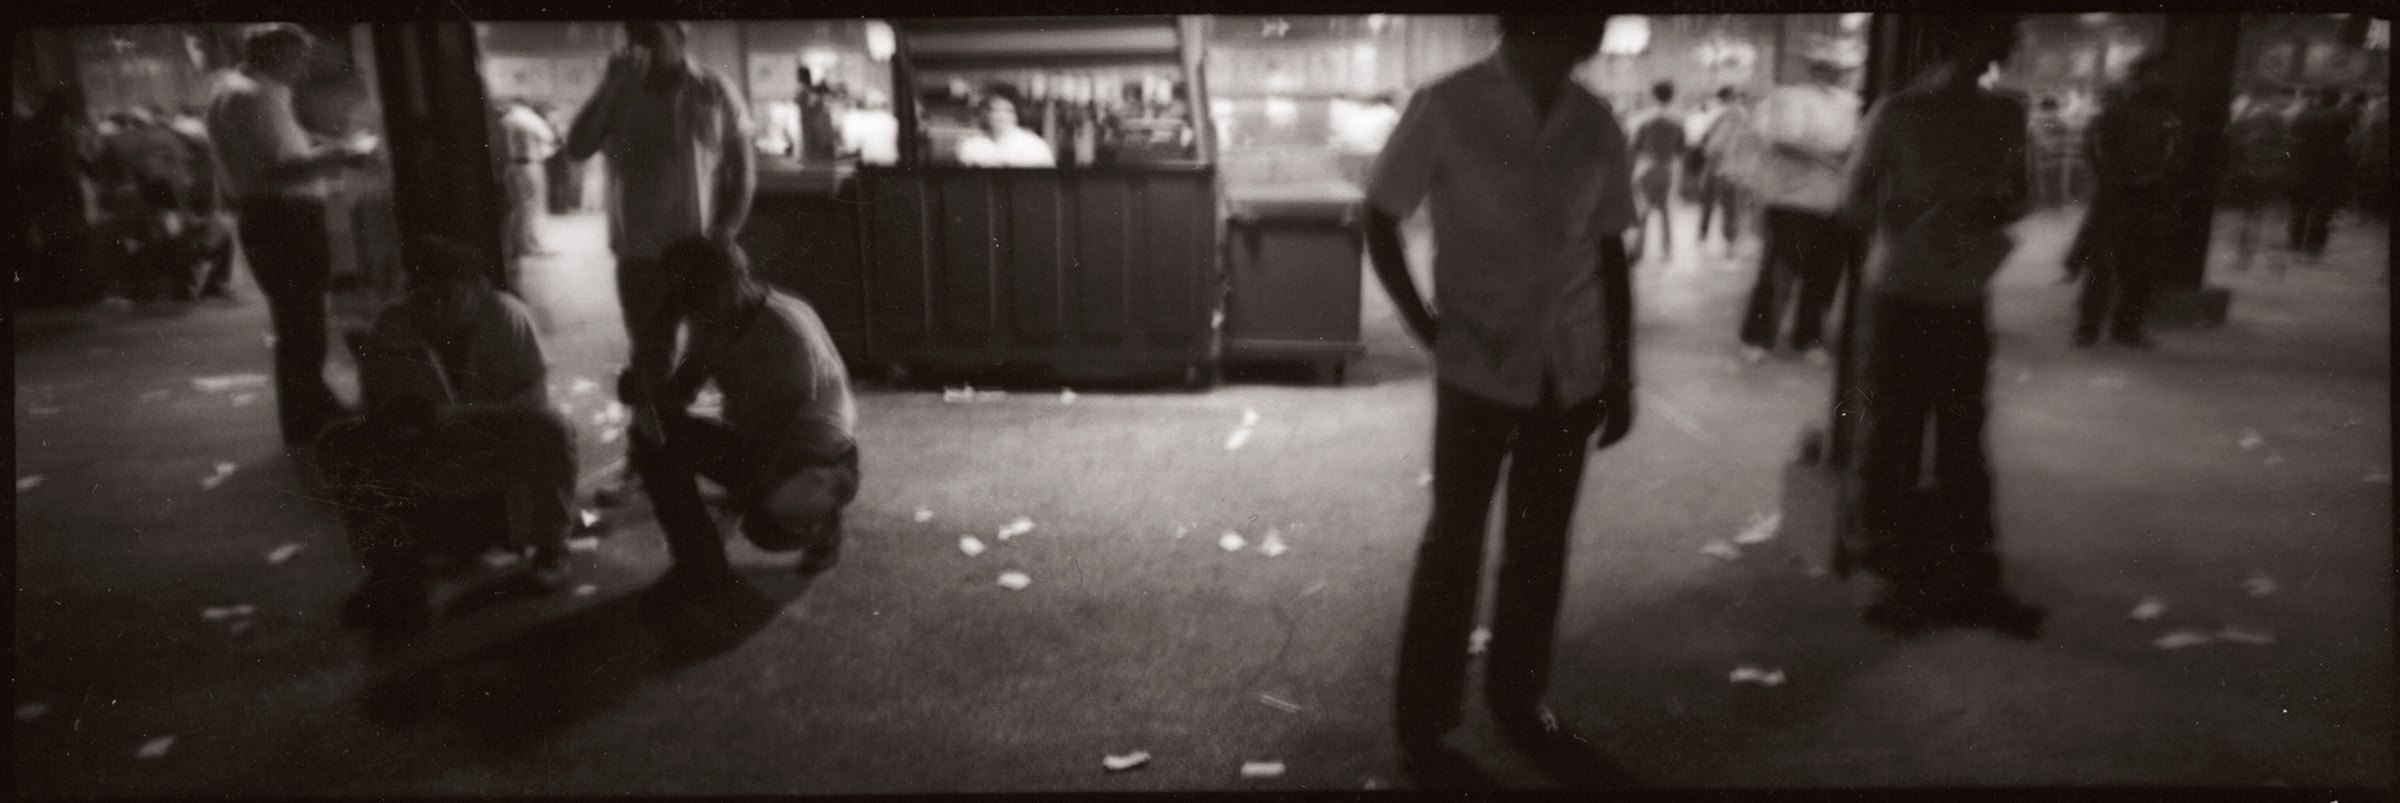 """Jason Horowitz  Untitled , 1991 Gelatin silver print 18"""" x 54"""" on 22""""x58"""" paper Matted in 26 1/2"""" x 60 1/2"""" frame One of four existing silver prints"""